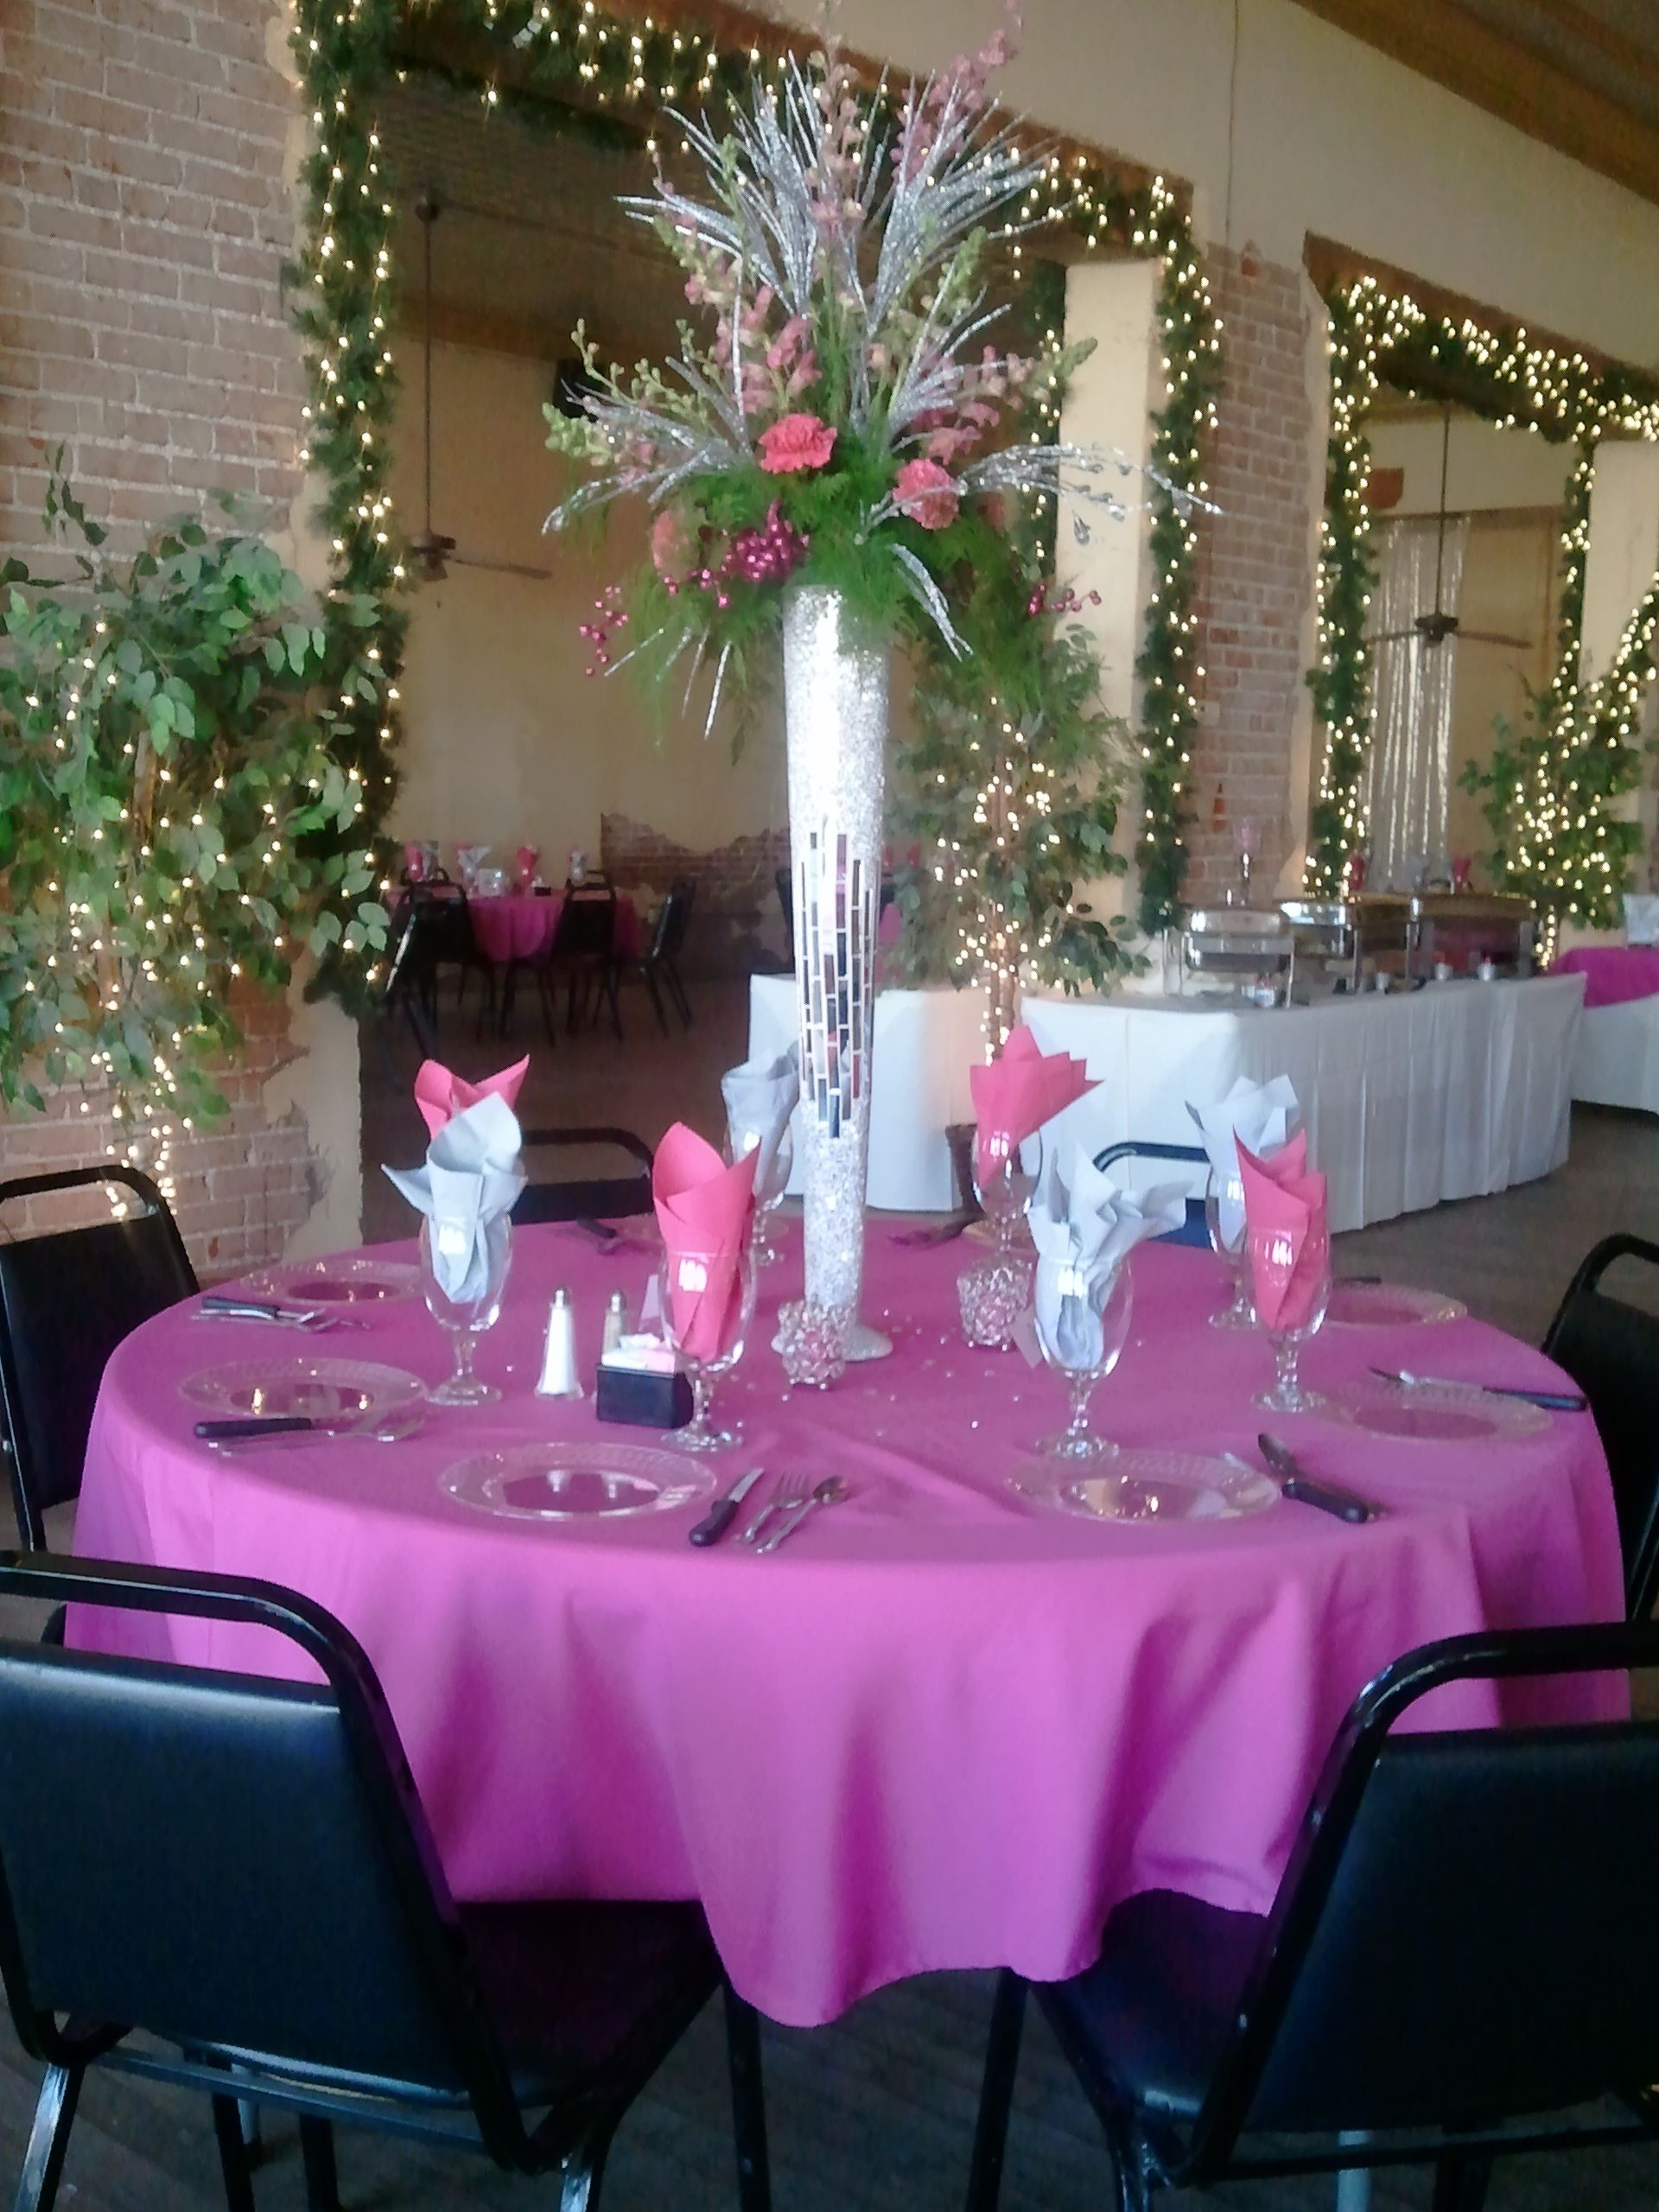 Hot Pink And Chic White Silver Wedding The Tall Mirrored Vase Adds Drama Elegance Blair Banquet Room Oklahoma